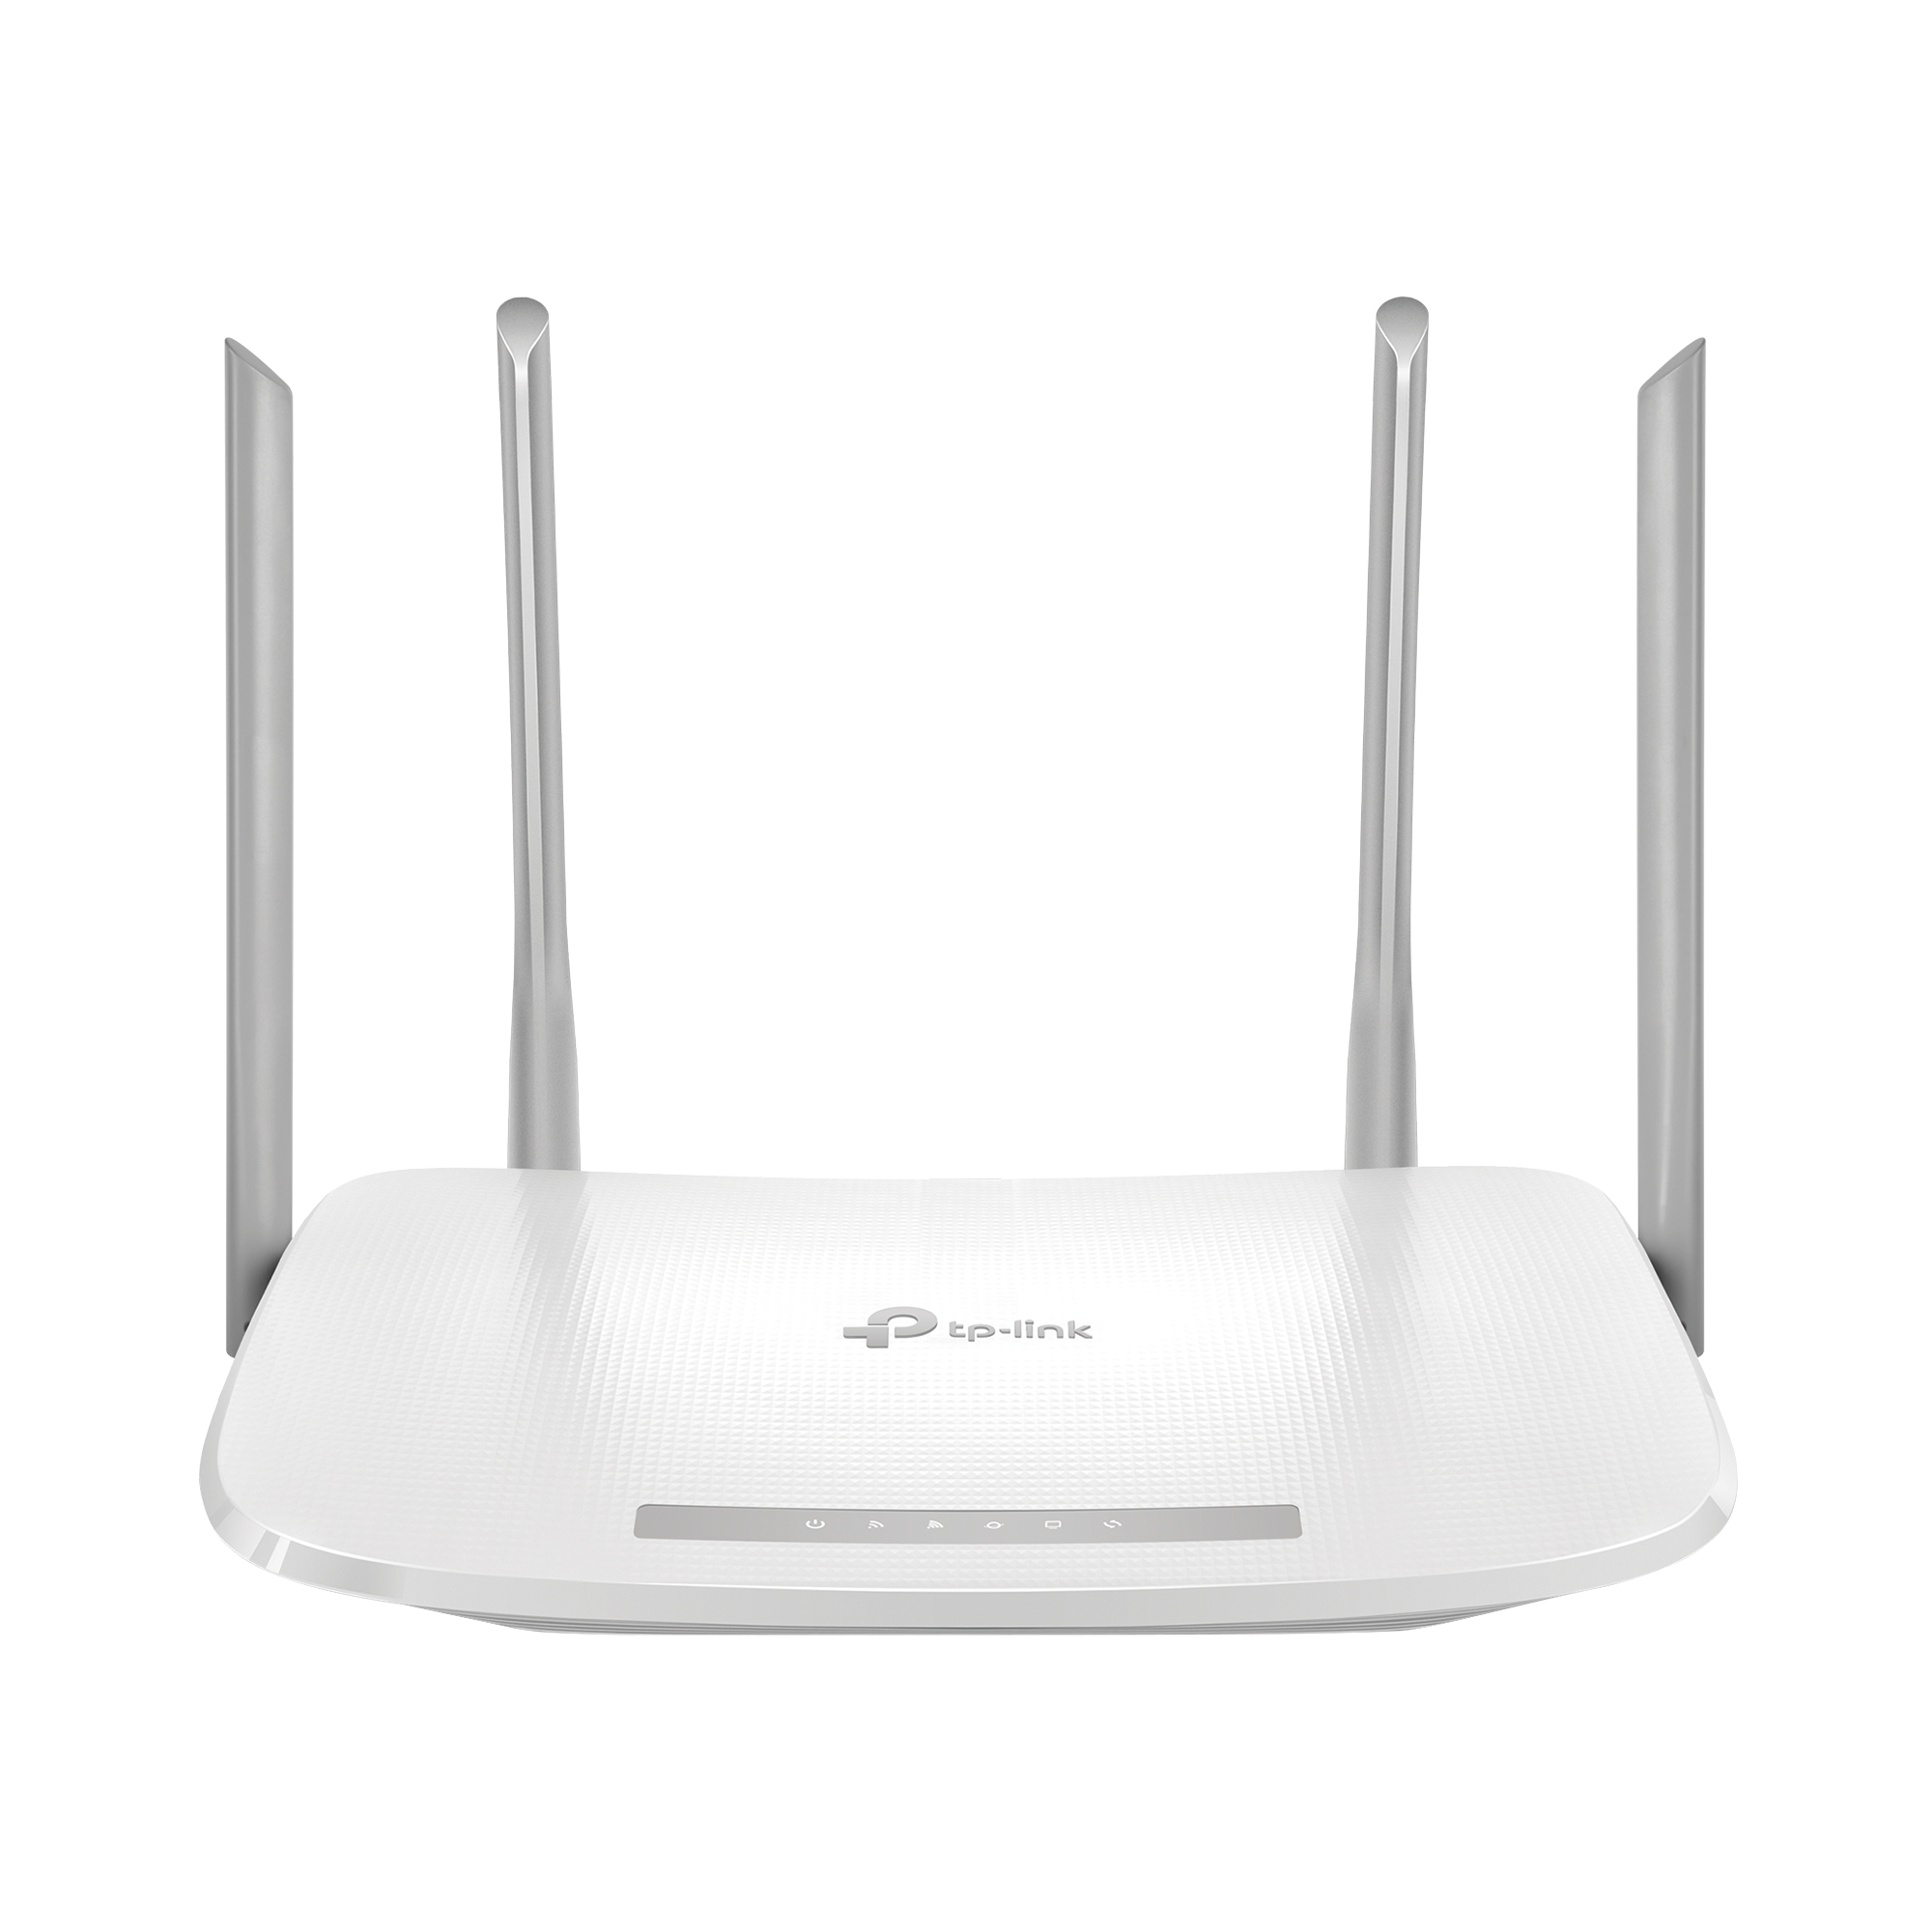 Router Inalámbrico ISP doble banda AC, 2.4 GHz y 5 GHz Hasta 1167 Mbps, 4 antenas externas omnidireccional, 3 Puertos LAN 10/100/1000 Mbps, 1 Puerto WAN 10/100/1000 Mbps